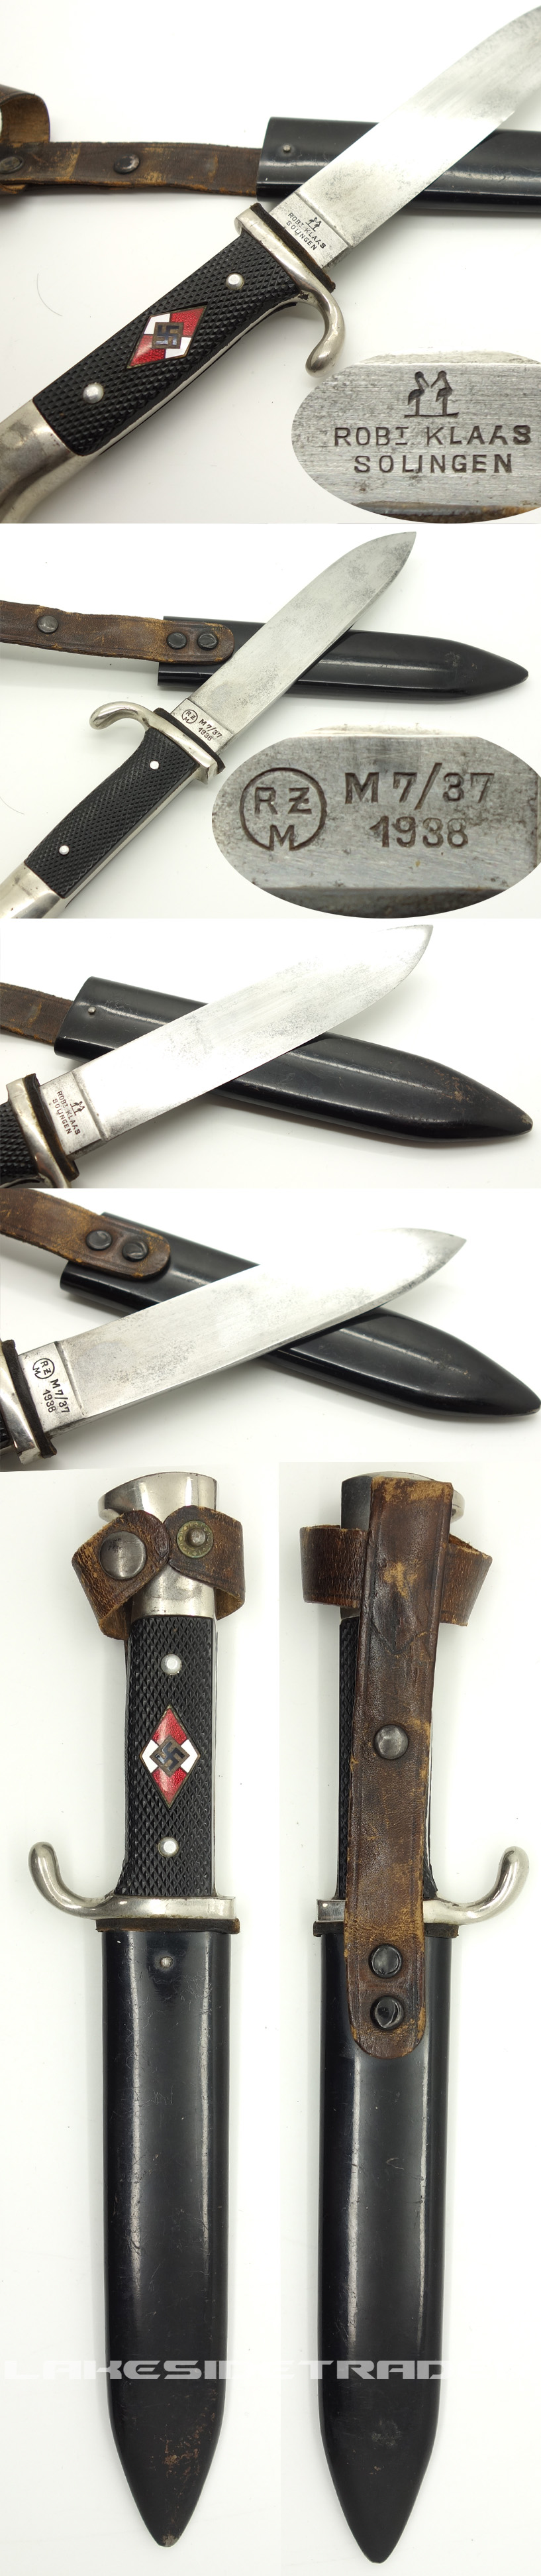 Transitional Hitler Youth Knife by Rbt. Klaas 1938